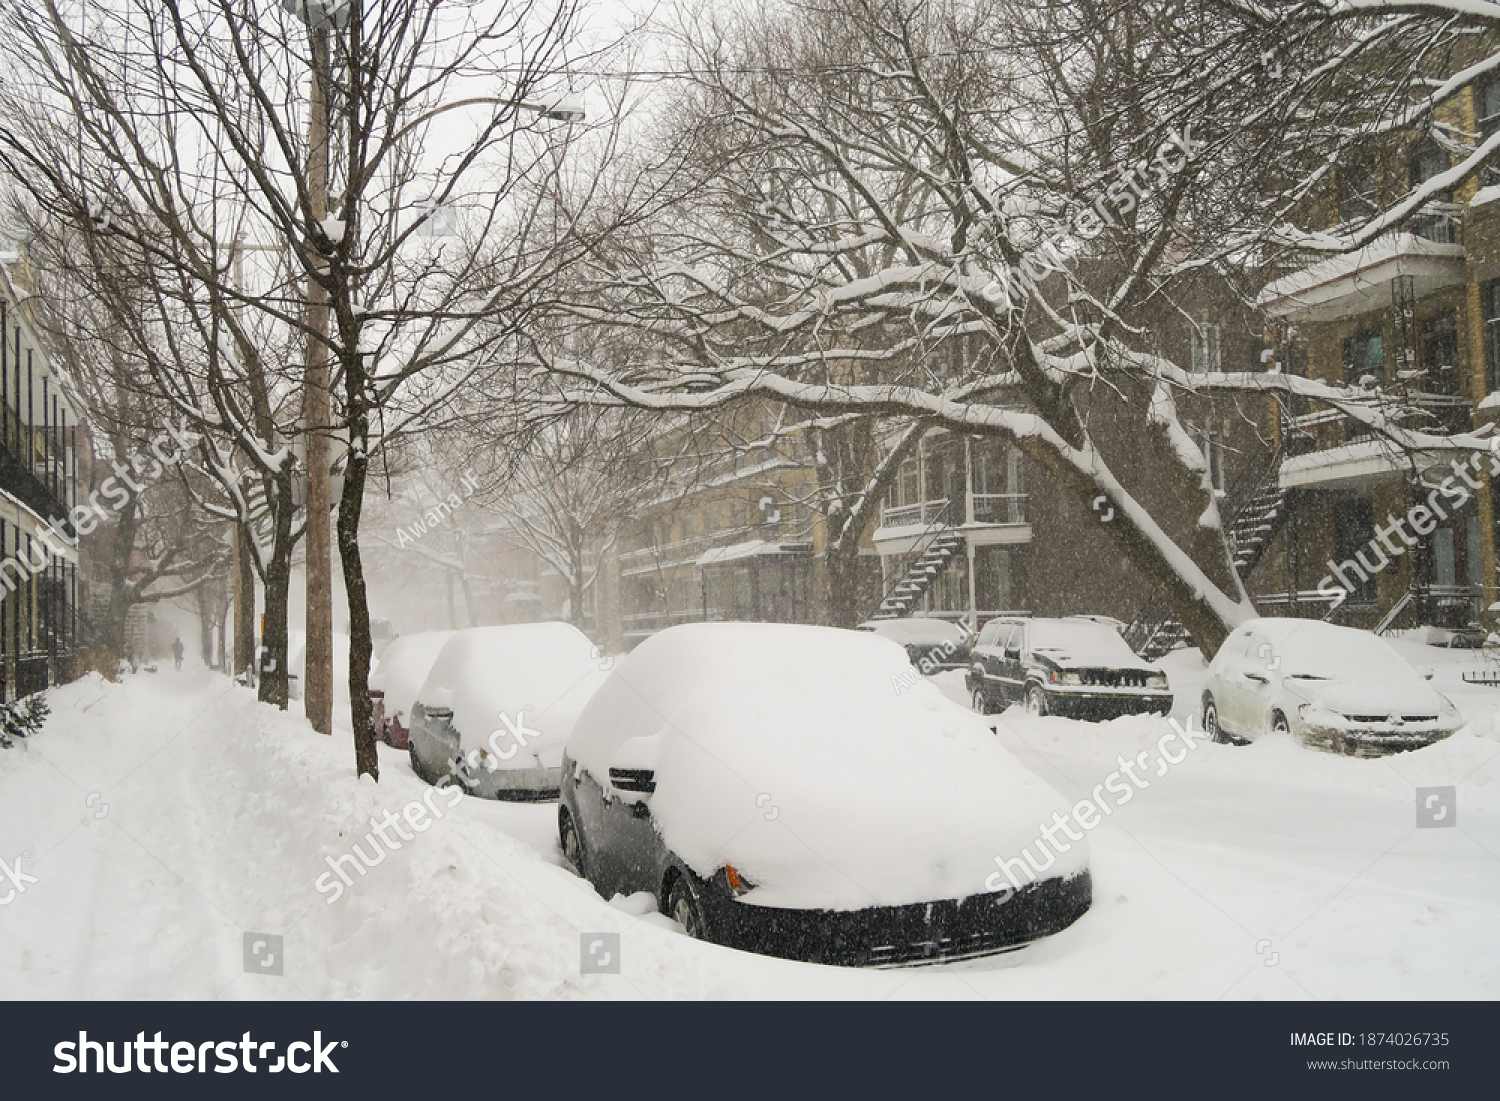 stock-photo-parked-cars-covered-with-sno